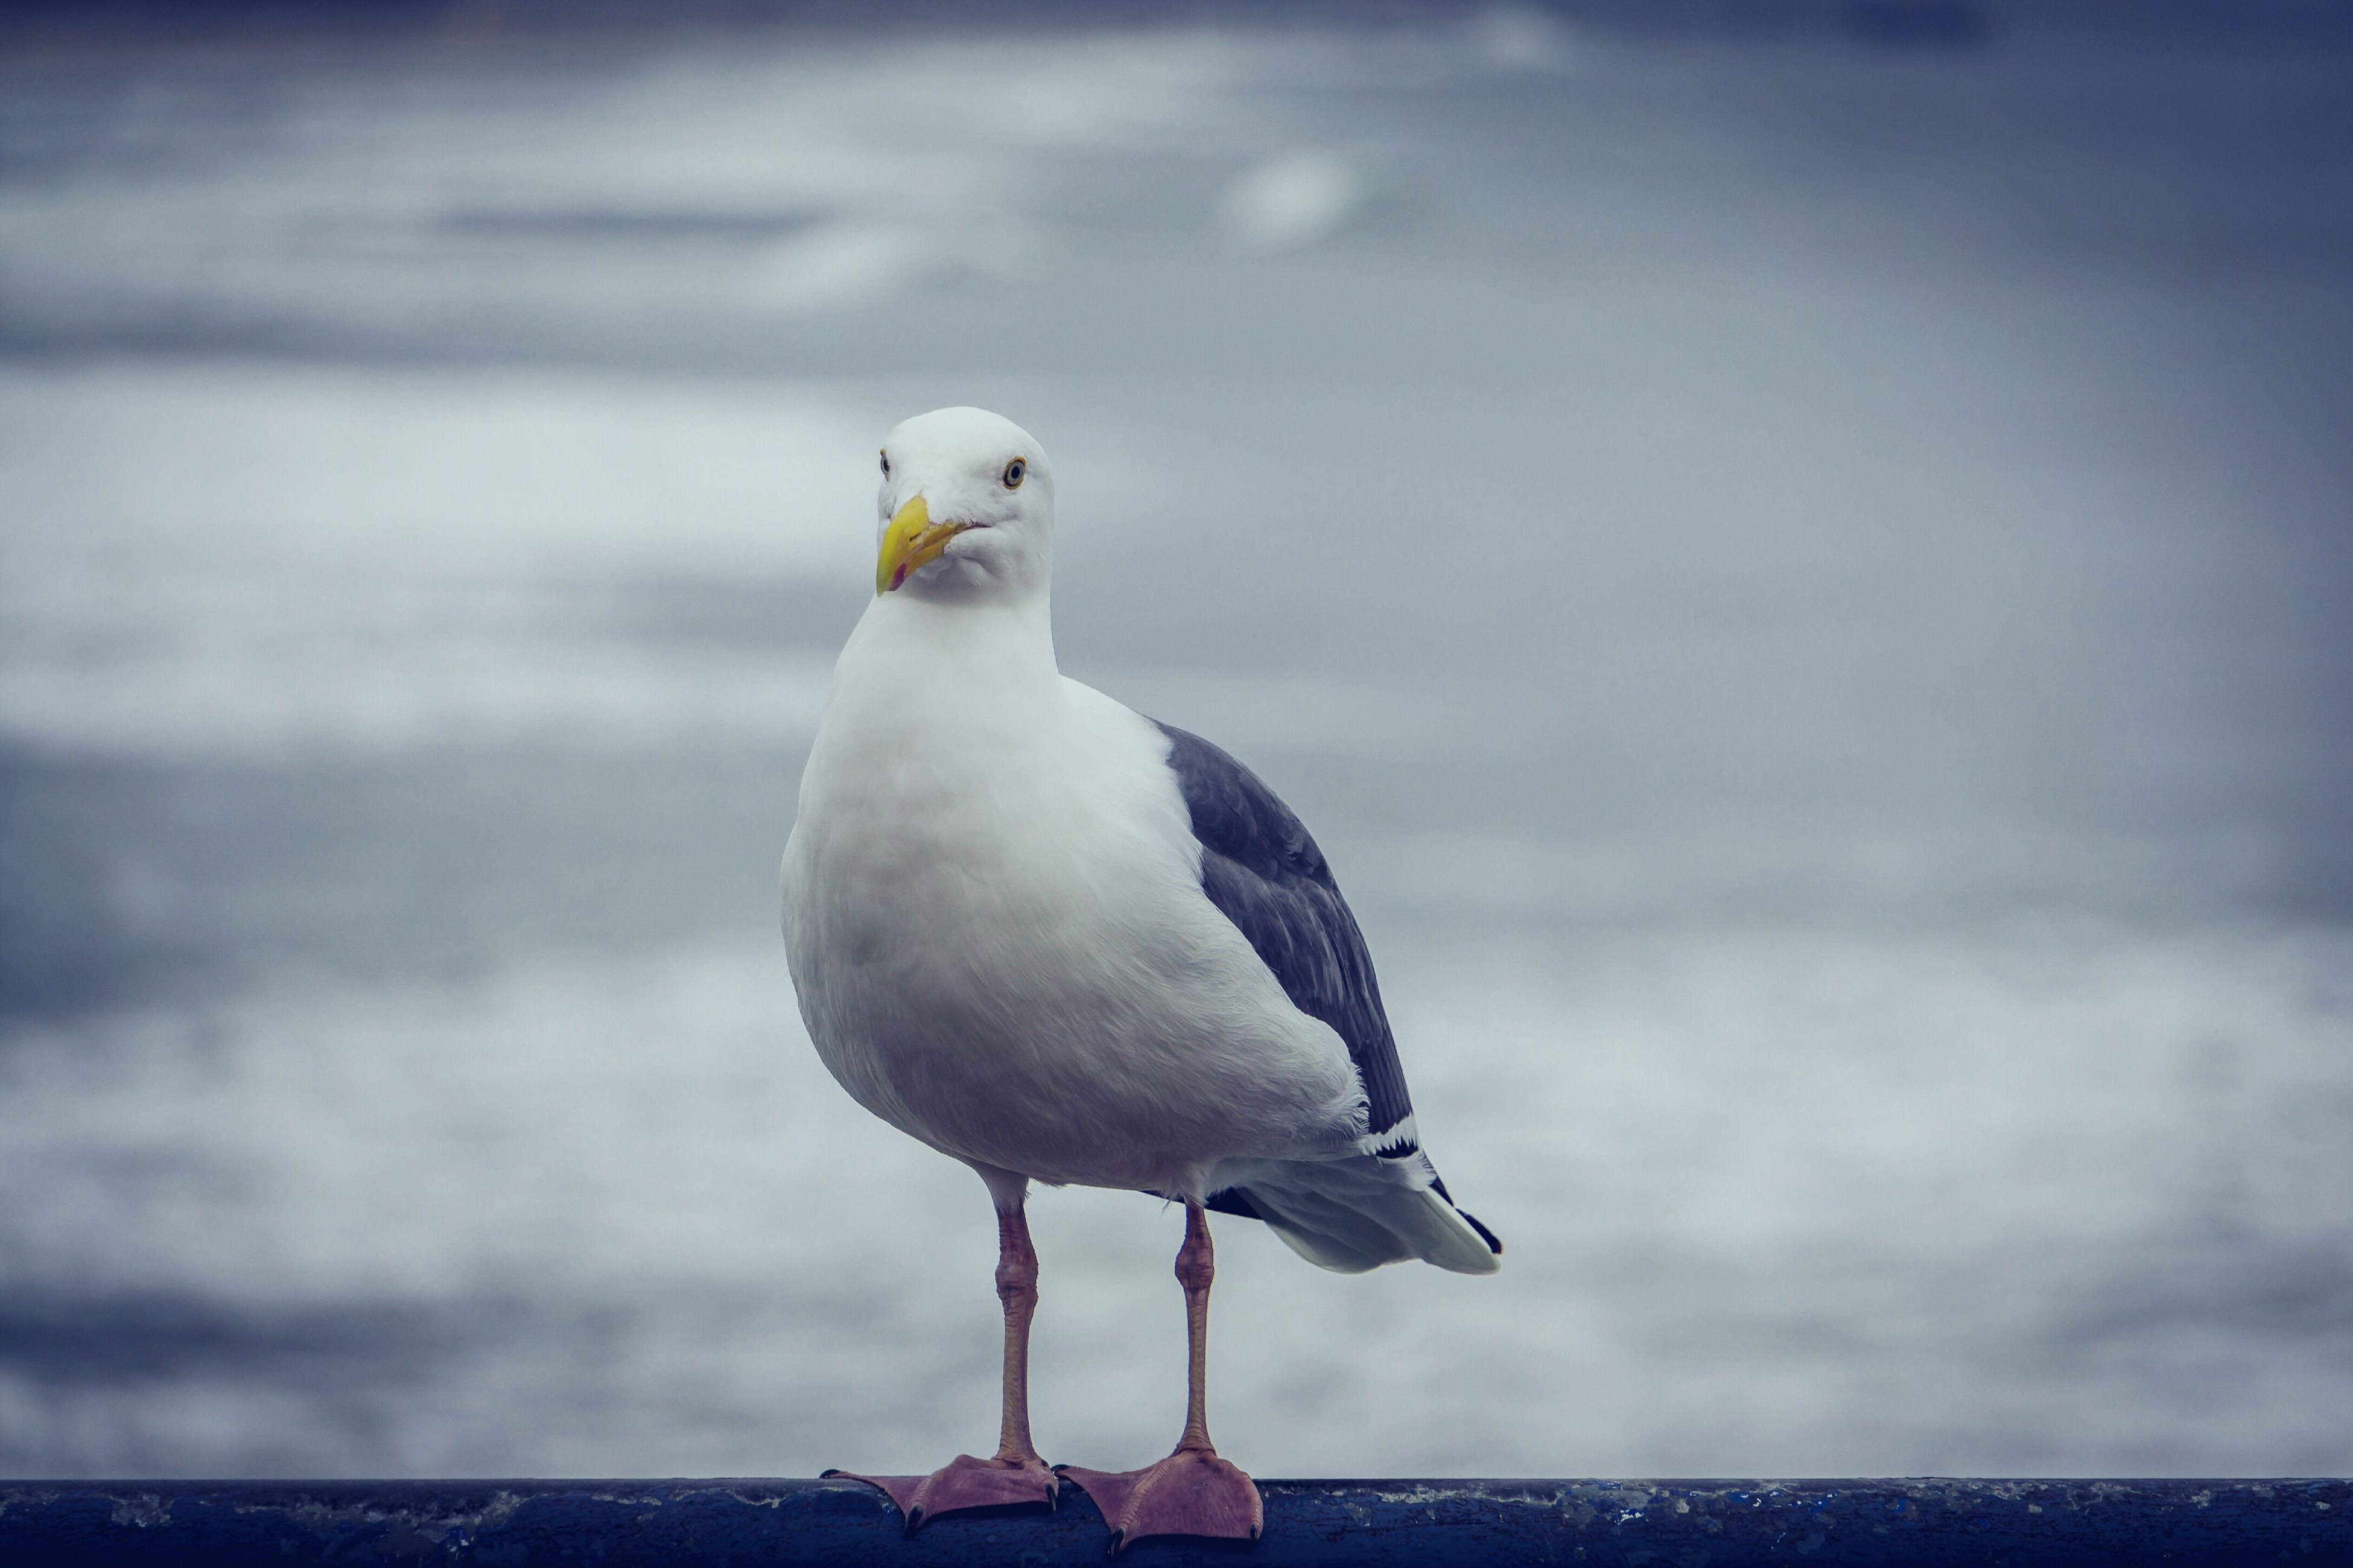 bird, animal themes, animal wildlife, animals in the wild, one animal, nature, seagull, no people, sea, water, close-up, perching, outdoors, day, beauty in nature